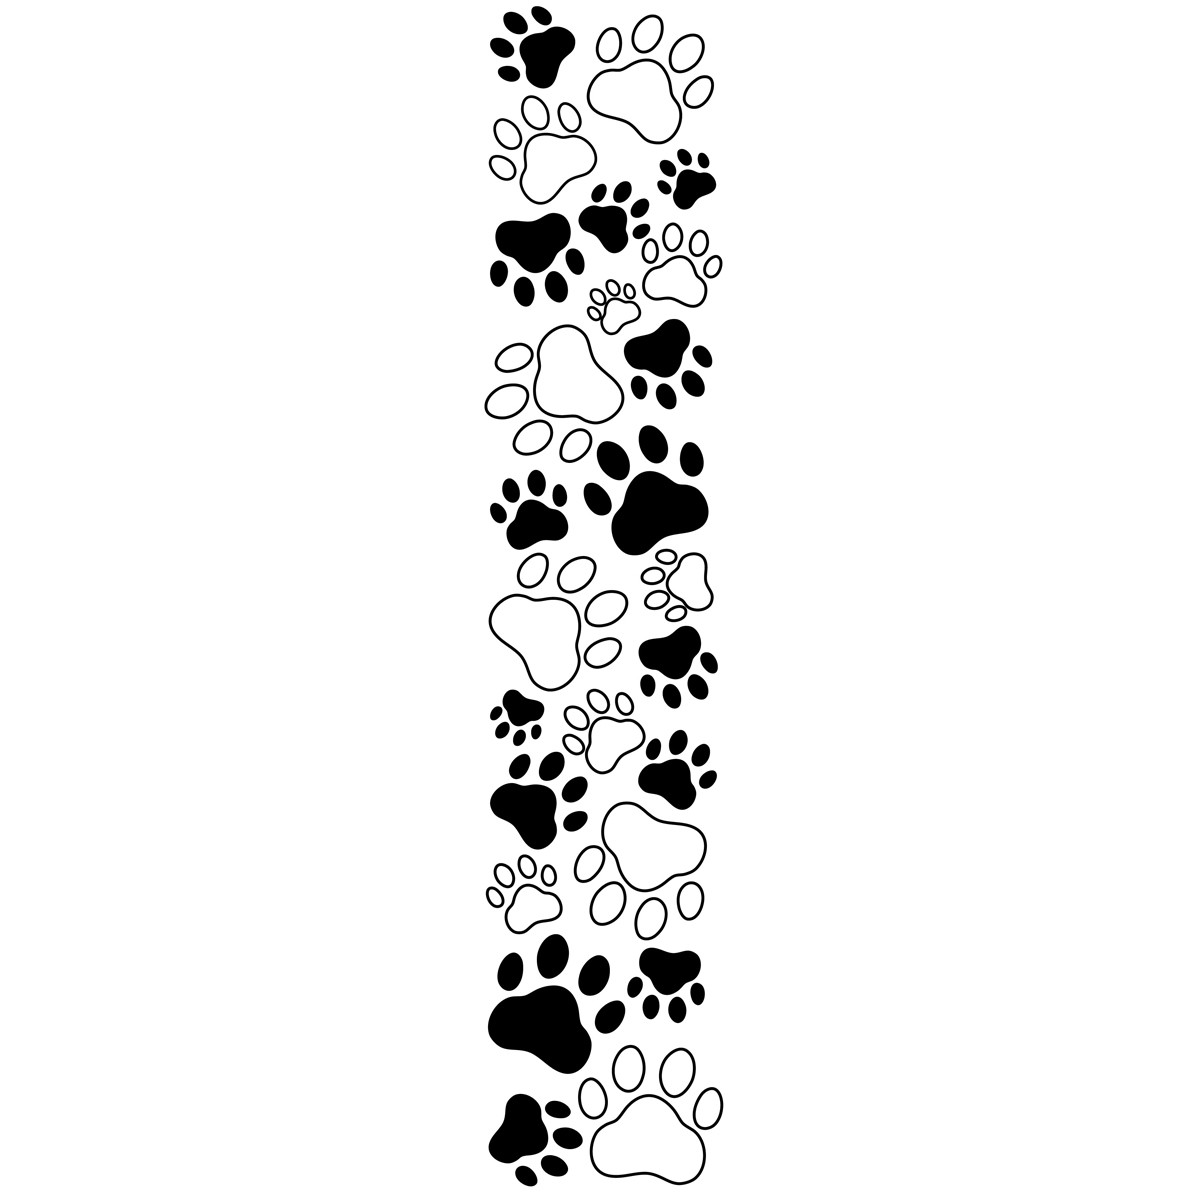 Dog Paw Prints Border Clipart - Clipart Kid